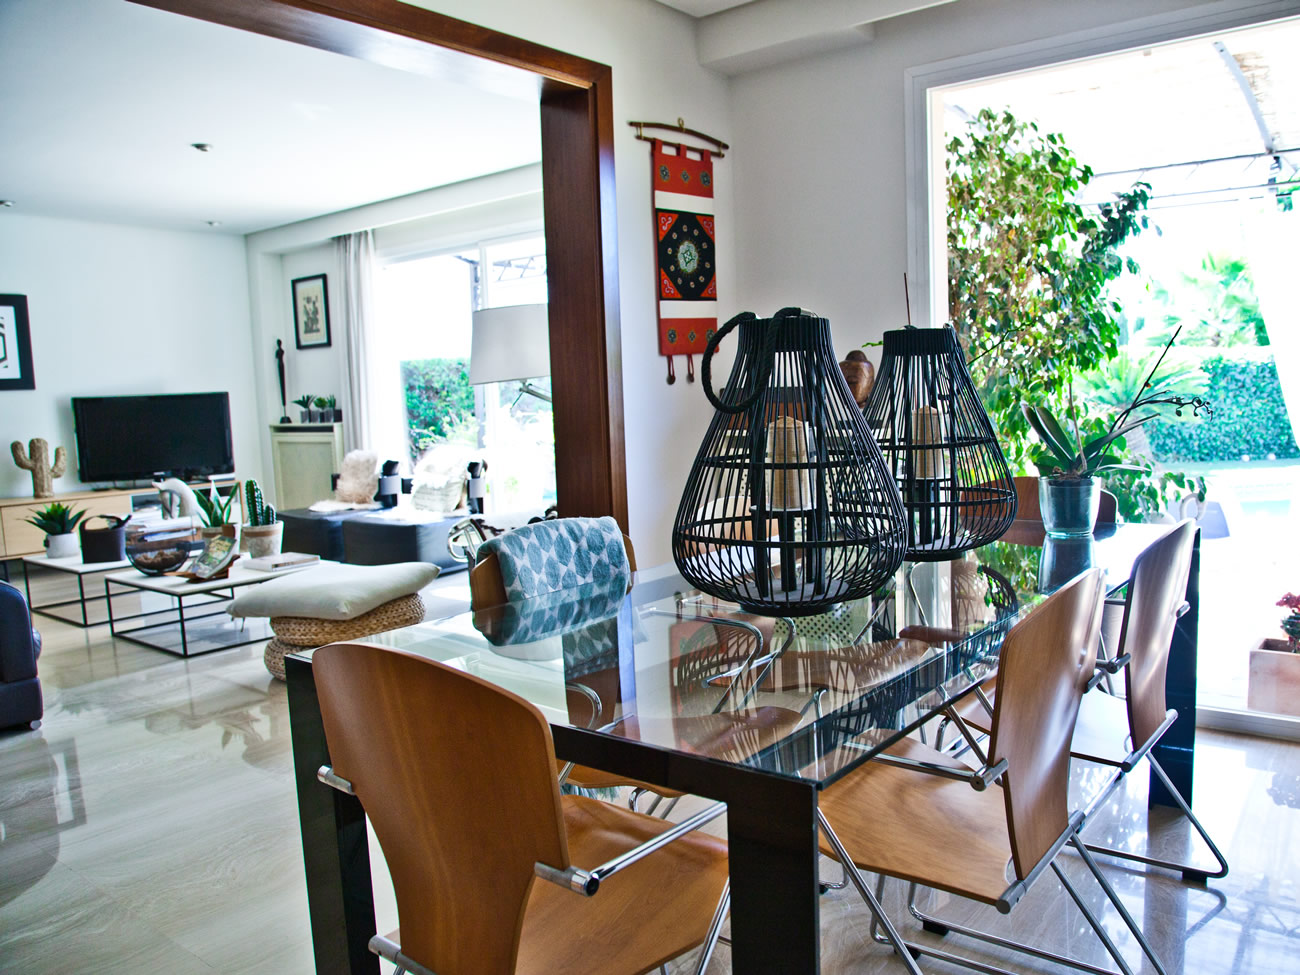 Home-staging-mallorca-blau-disseny-sometimes-8